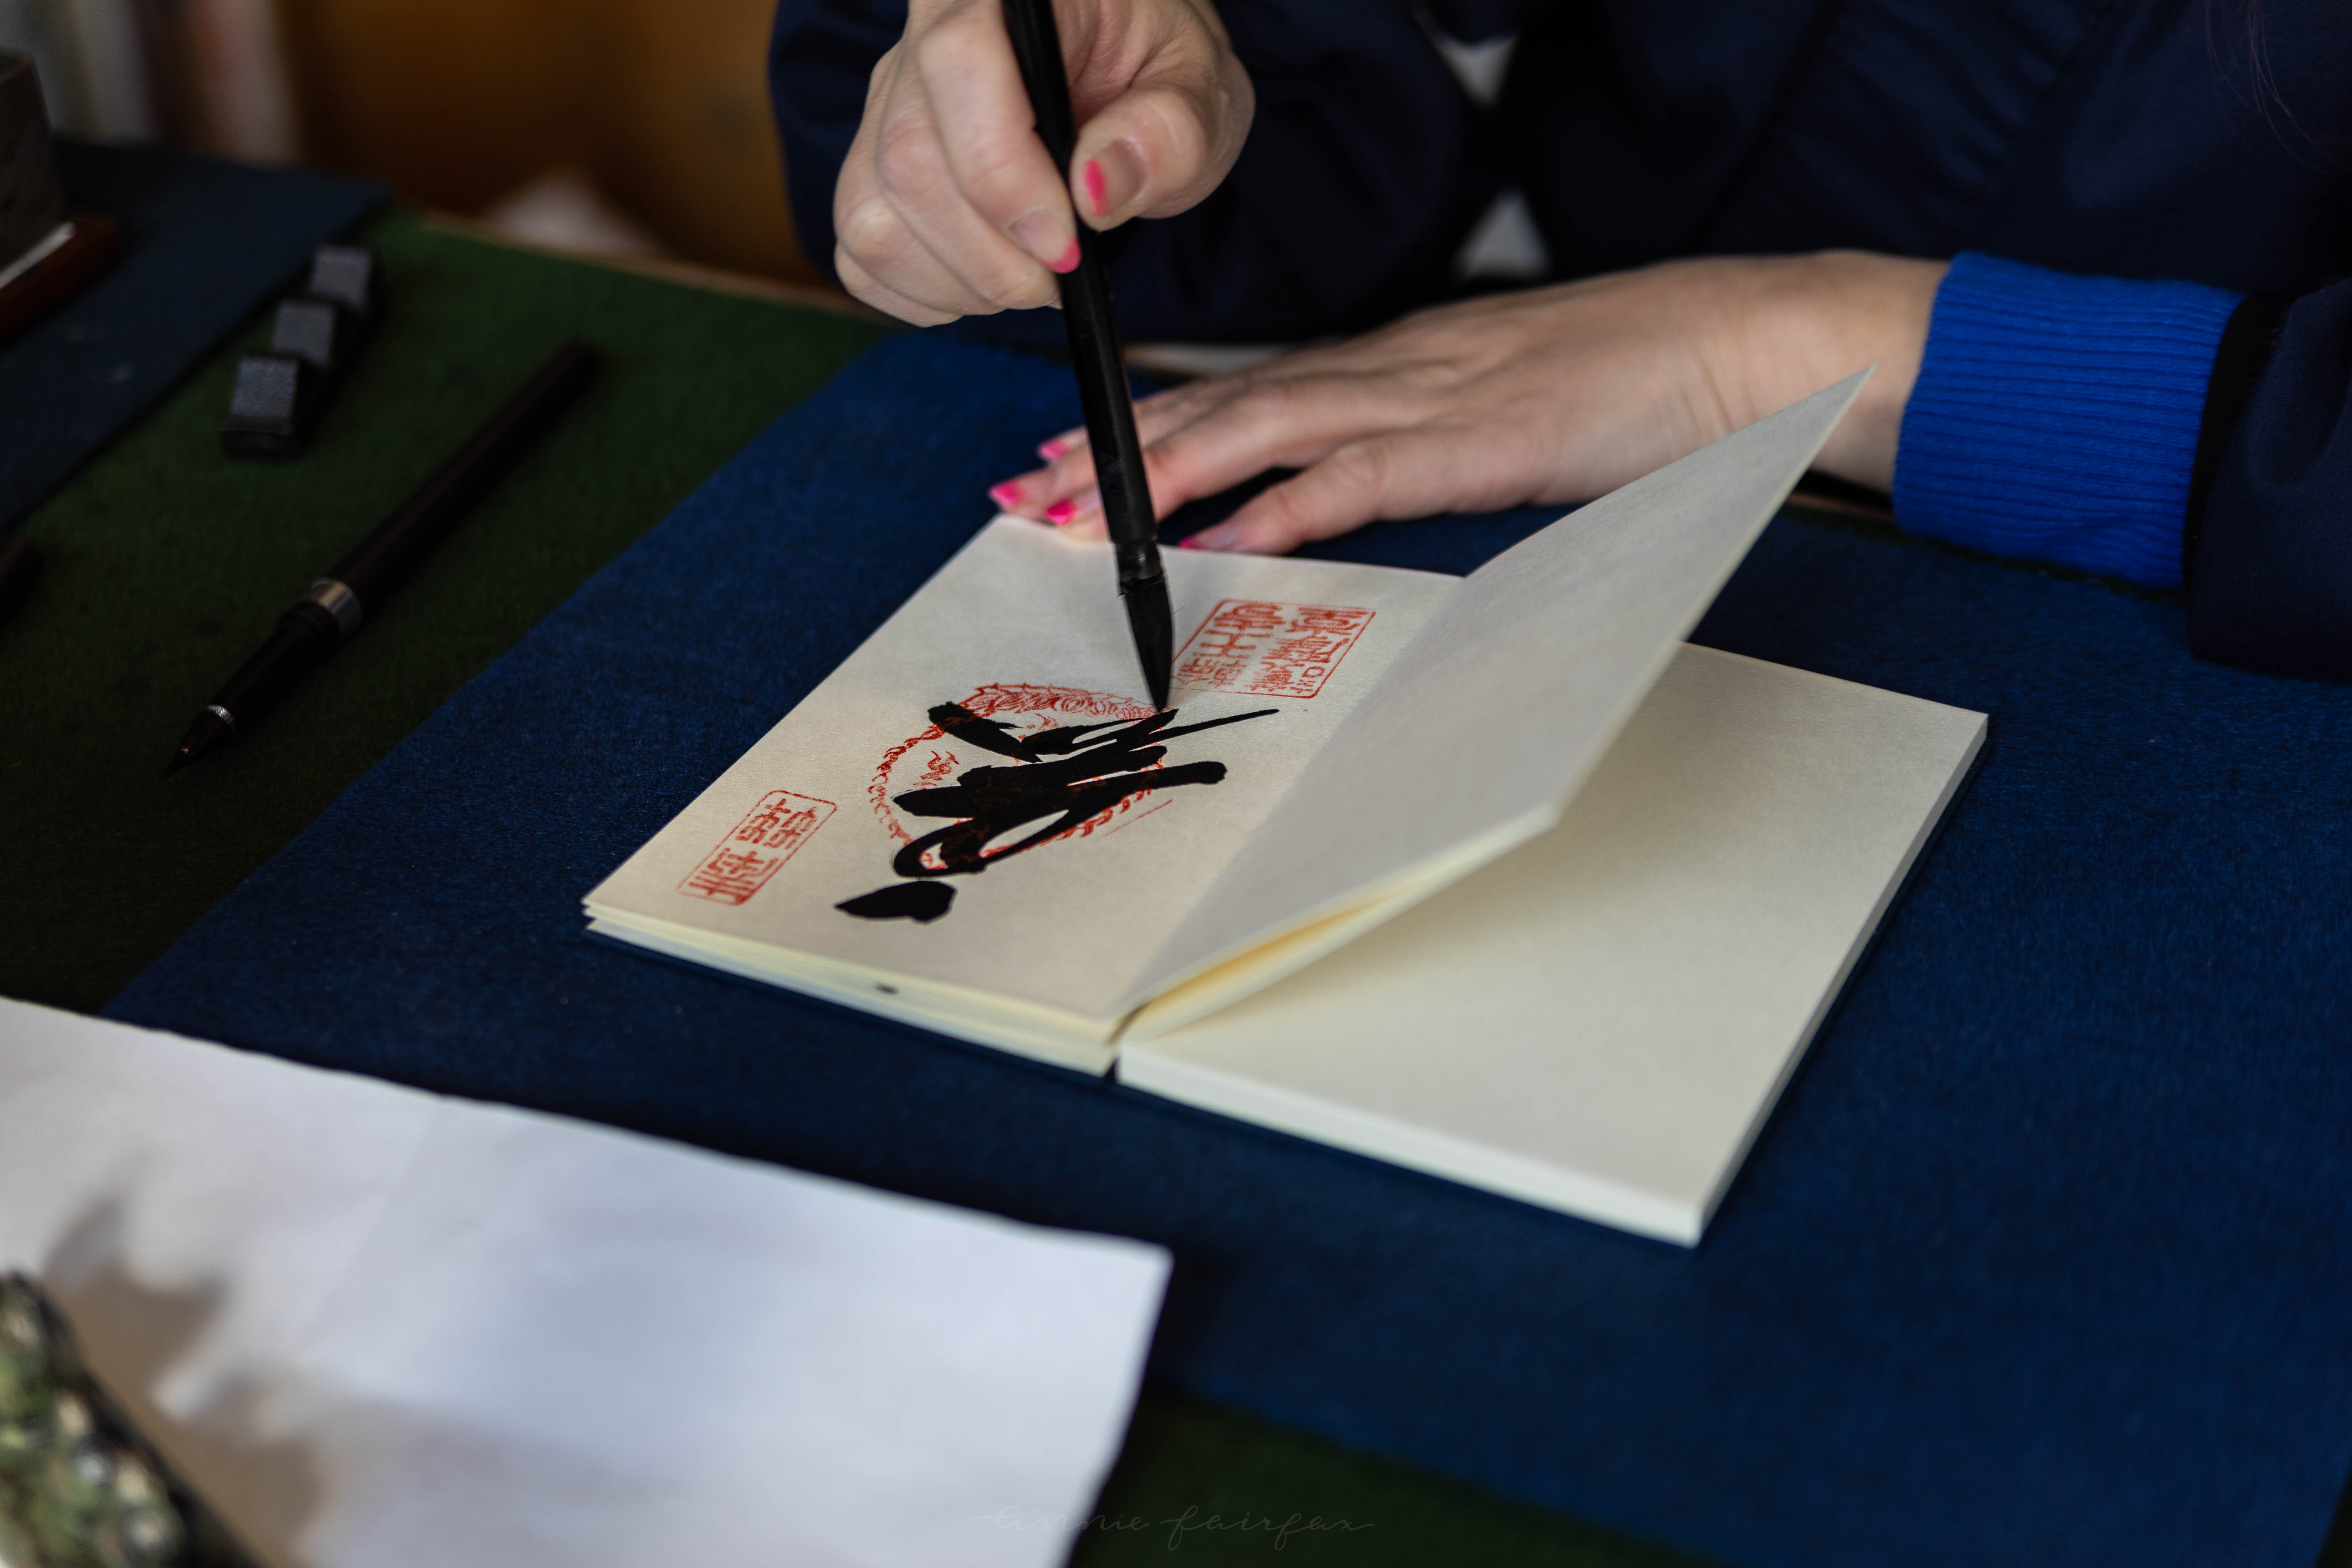 Goshiun Chou Japanese Temple and Shrine Stamp Book Calligraphy Souvenir Japanese Garden the Ultimate Travel Guide to Nikko, Japan Written, Researched, and Photographed by Annie Fairfax